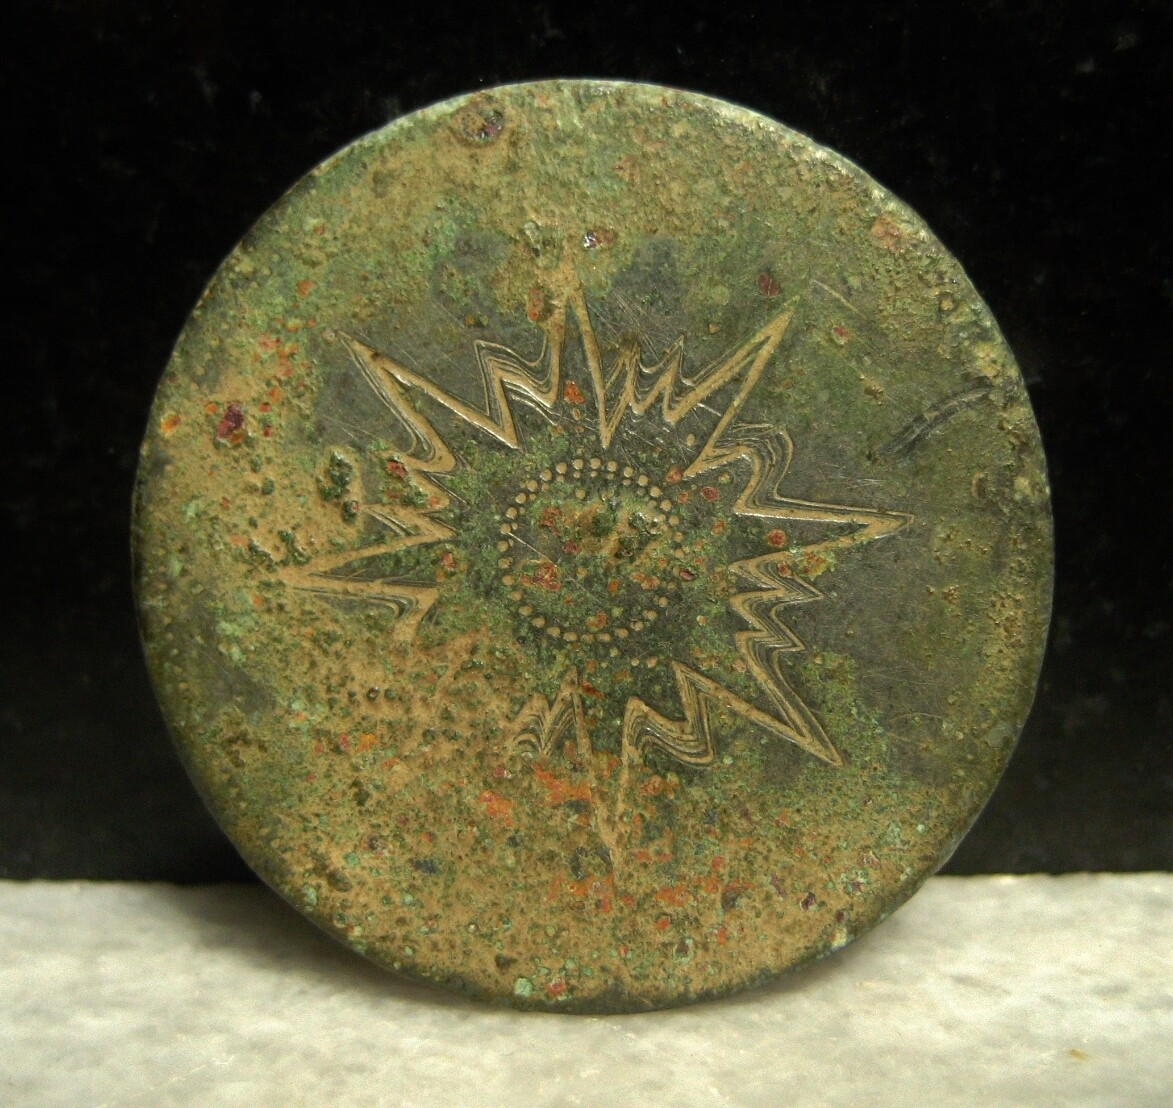 JUST ADDED ON 11/6 - THE BATTLE OF ANTIETAM - Very Large Flower Button - Star or Sun